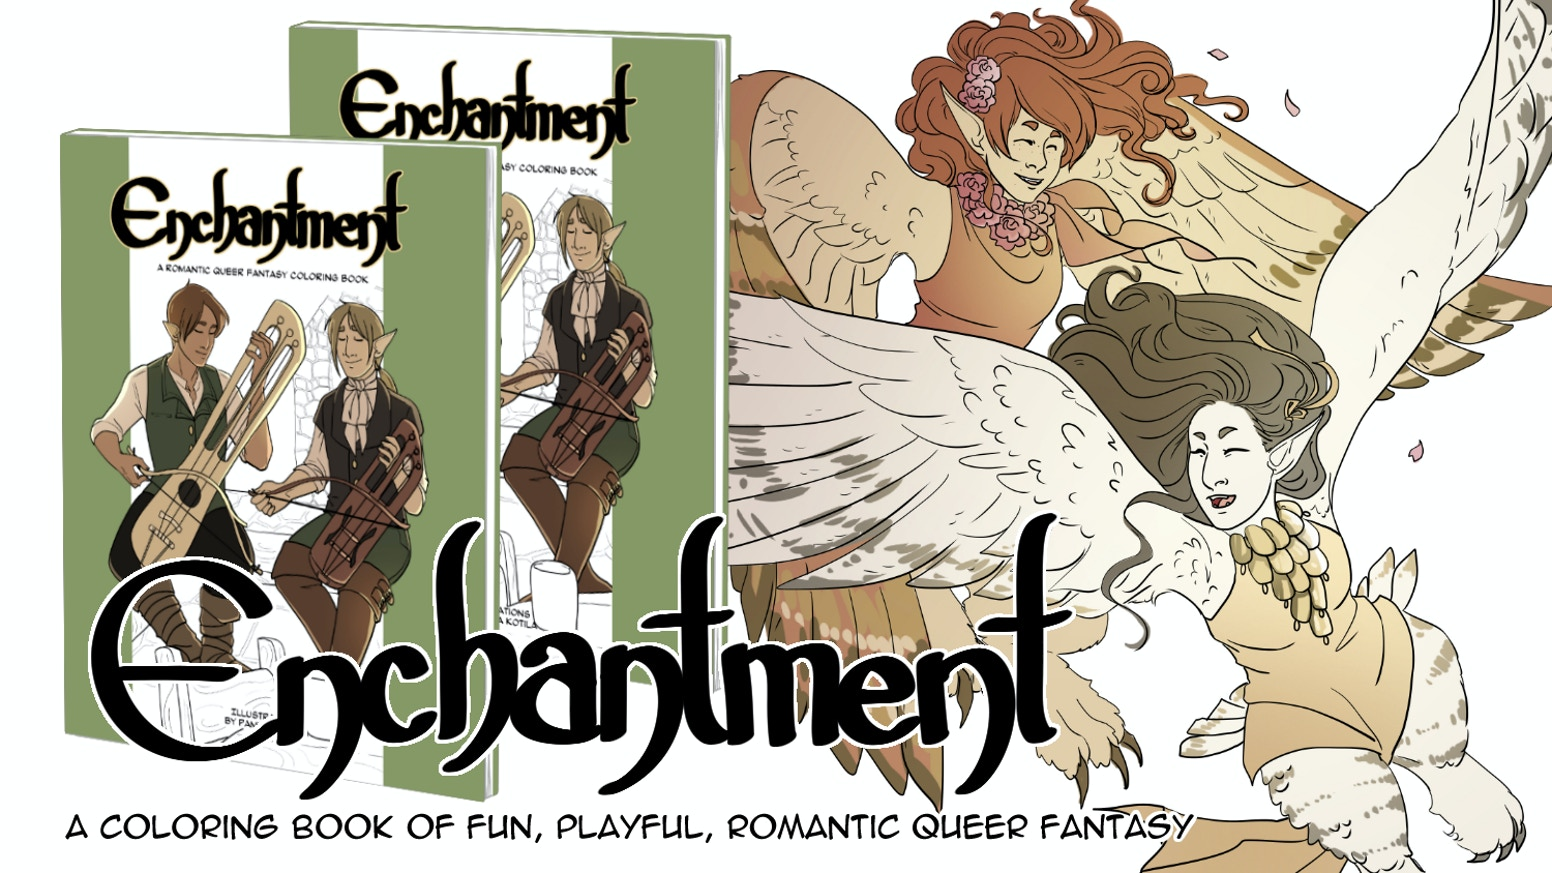 This coloring book features moments shared between queer fantasy characters. The focus is on warm, playful, and romantic illustrations!